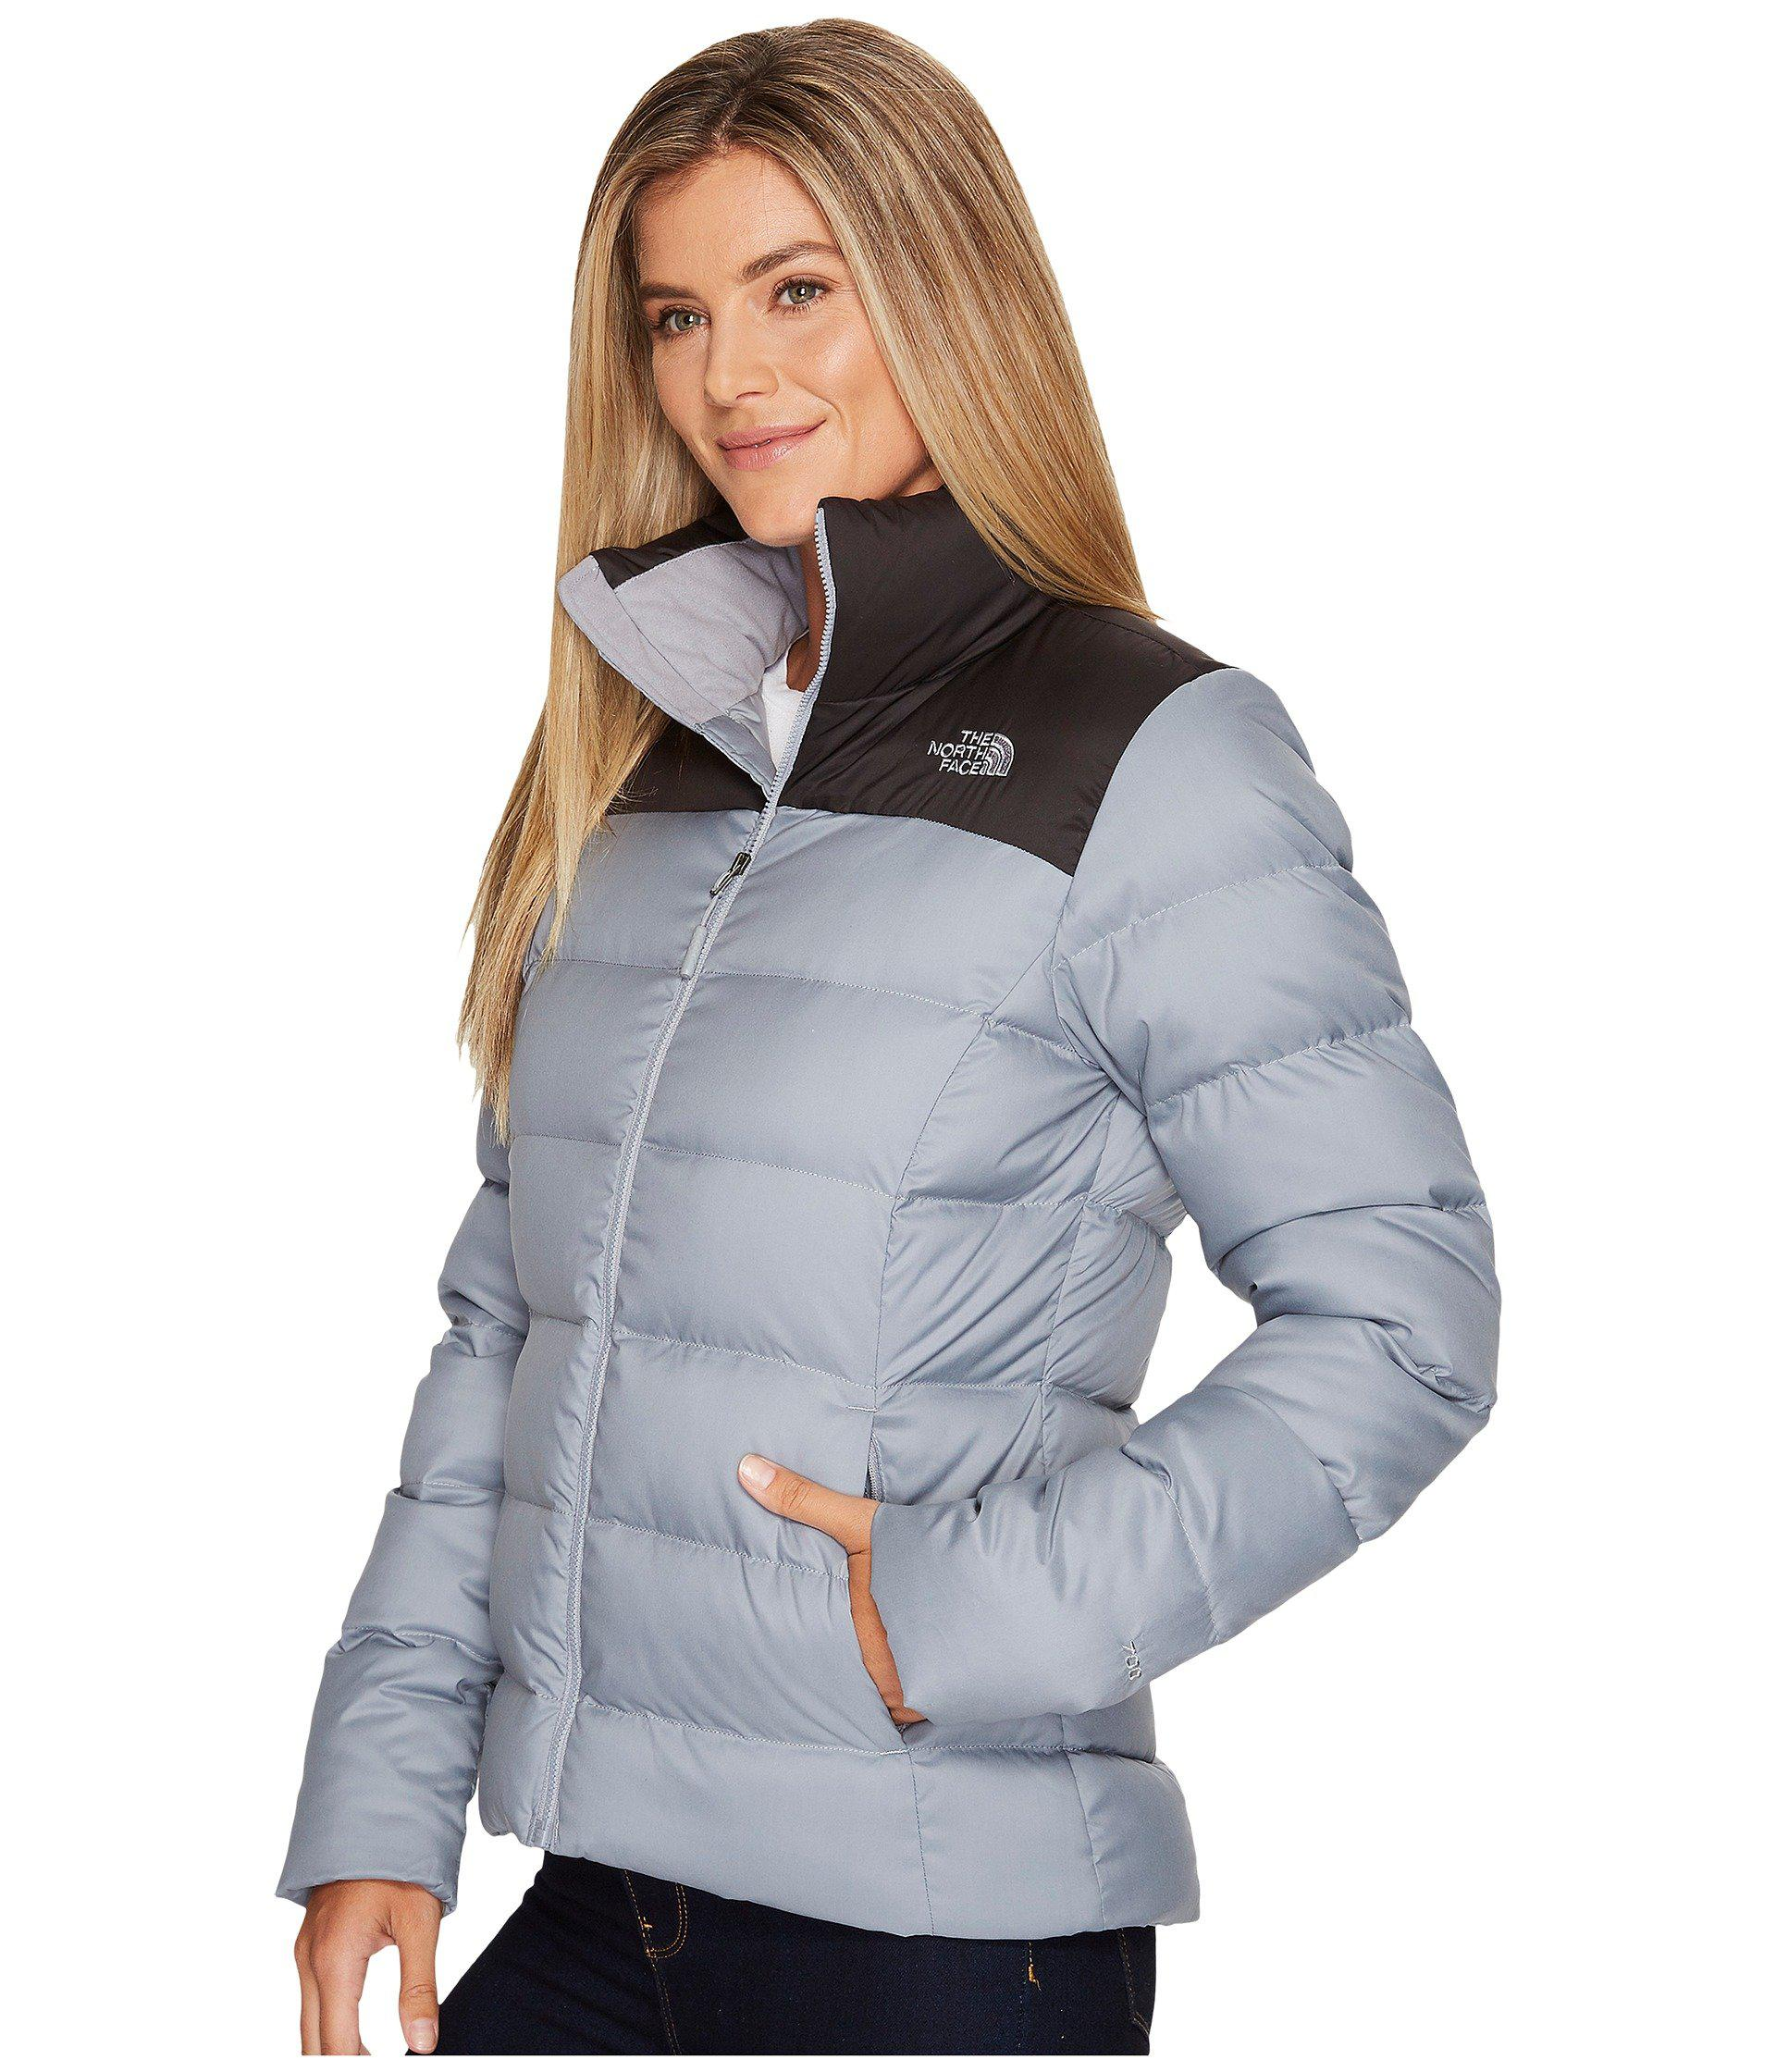 05eaed139d25 Lyst - The North Face Nuptse Jacket in Gray - Save 22%